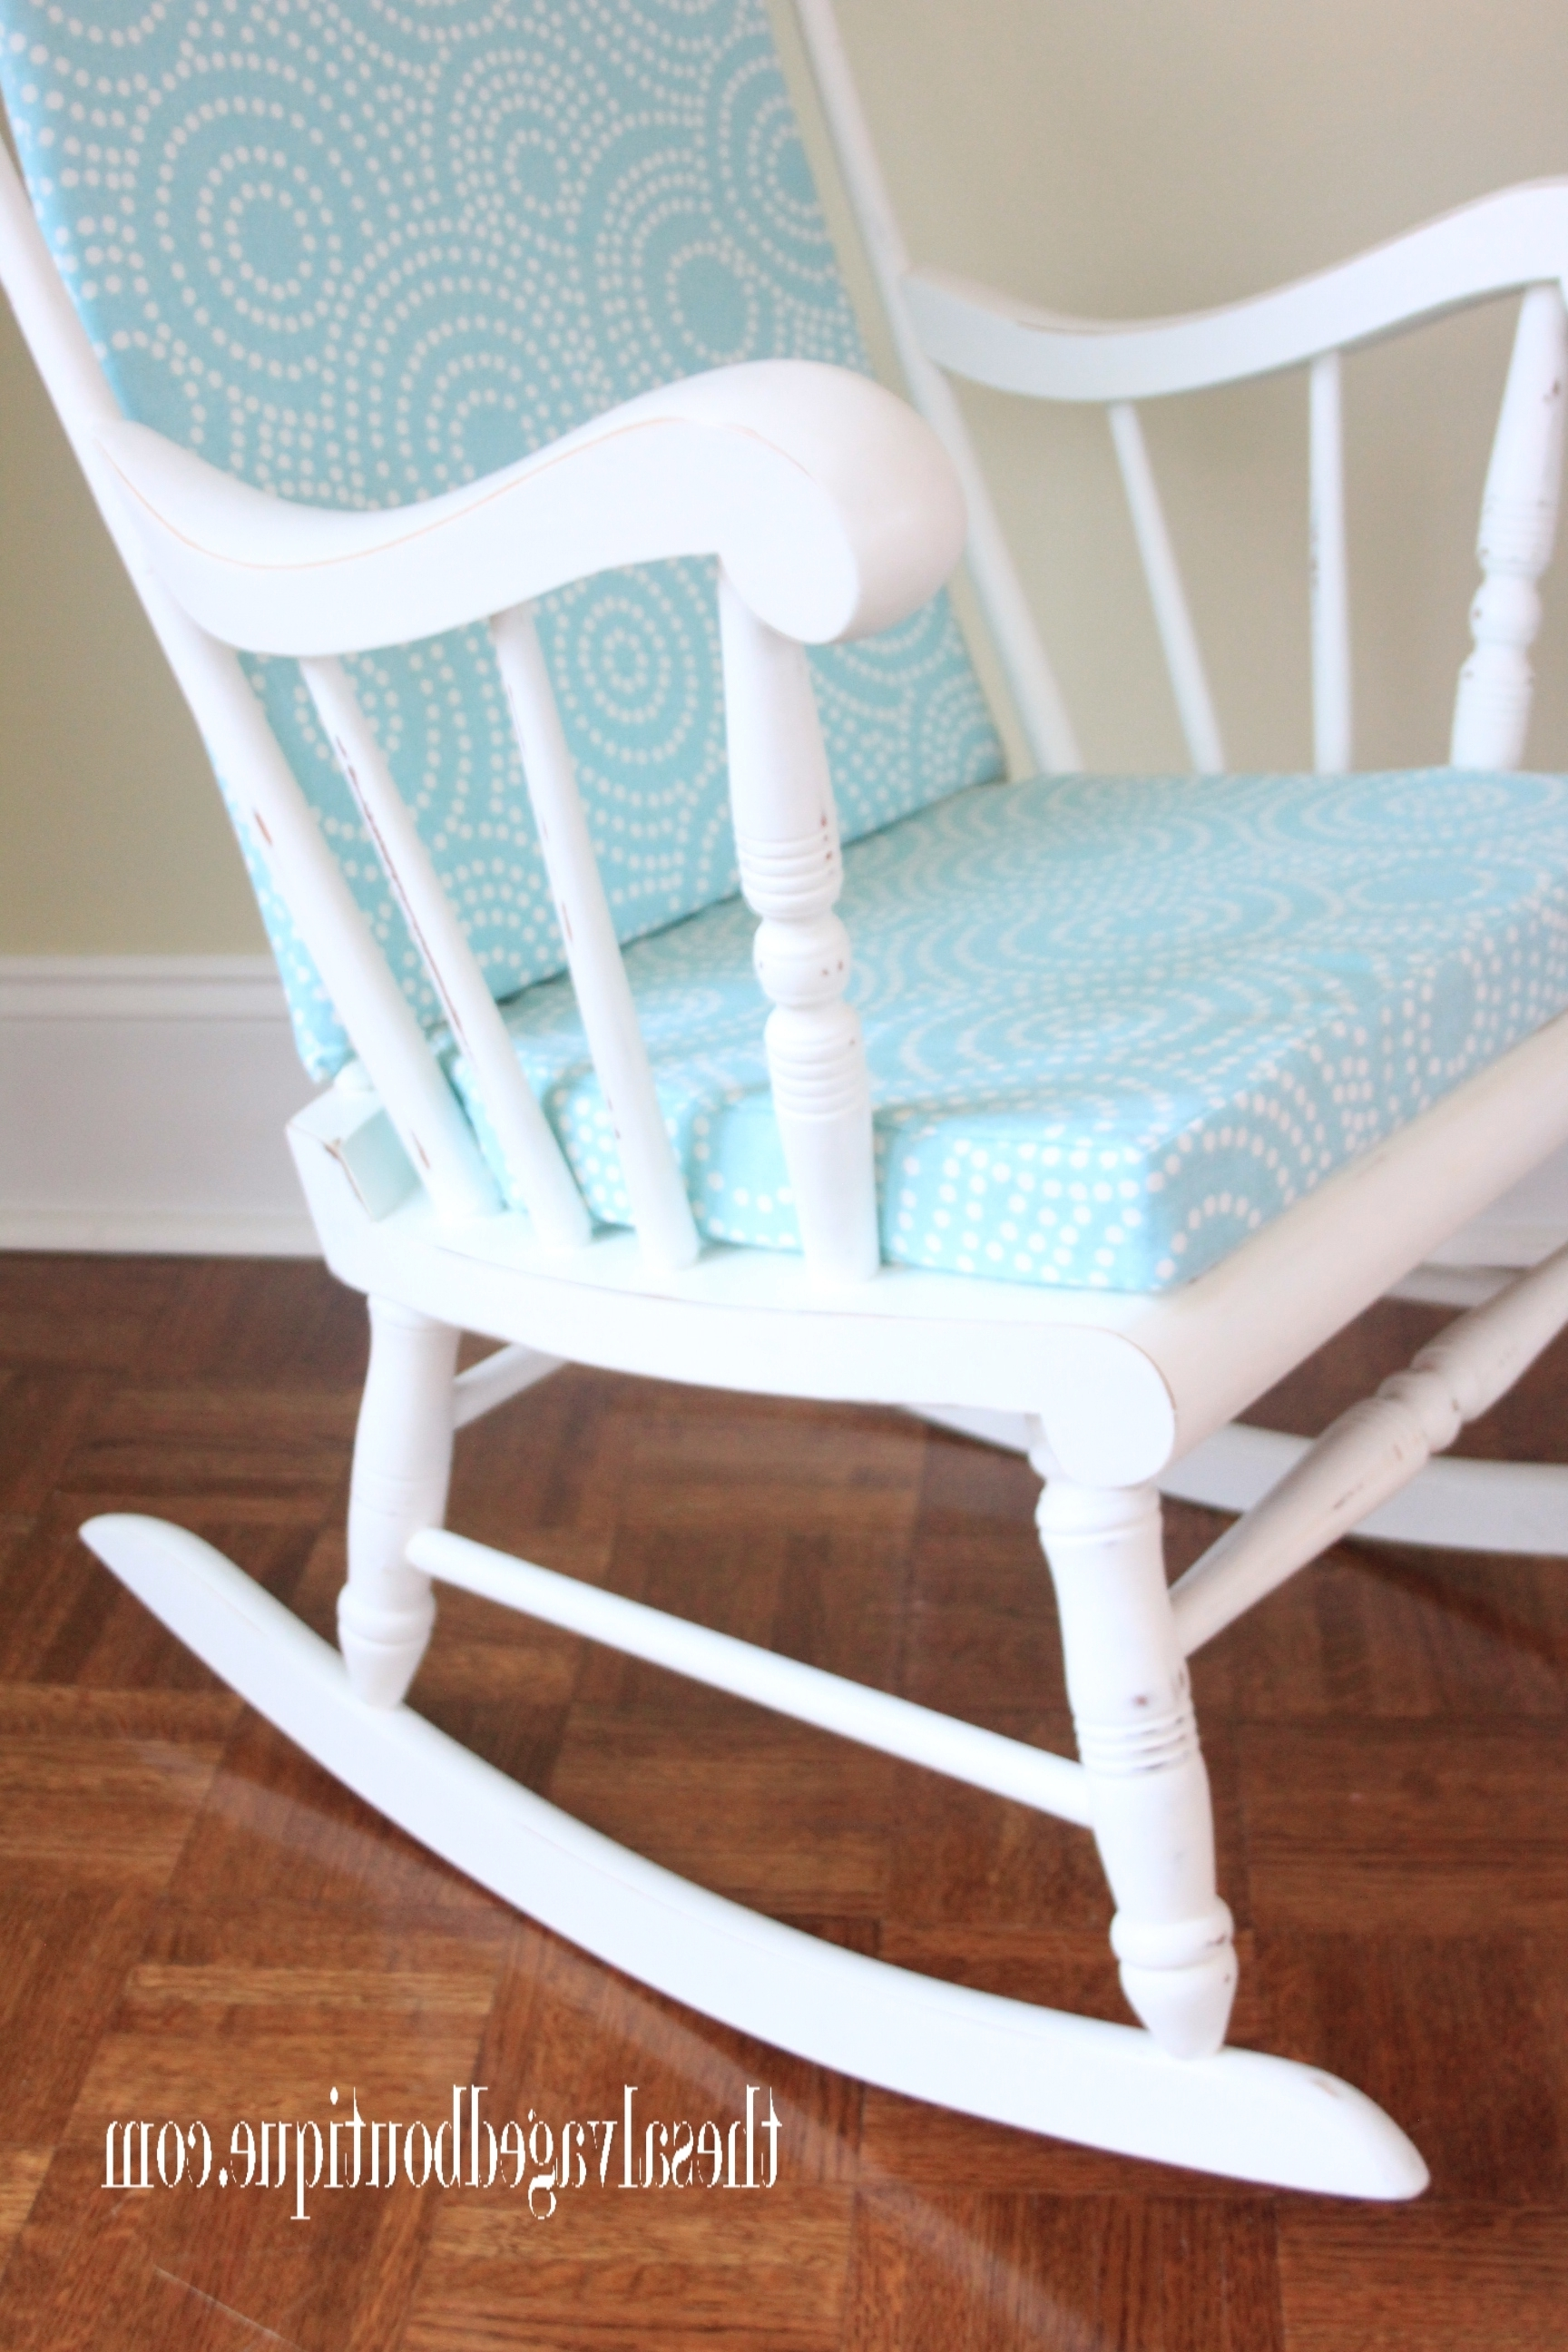 Upcycled Rocking Chairs for 2017 Grandpa's Rocking Chair Brightened Up For New Baby Nursery. - The